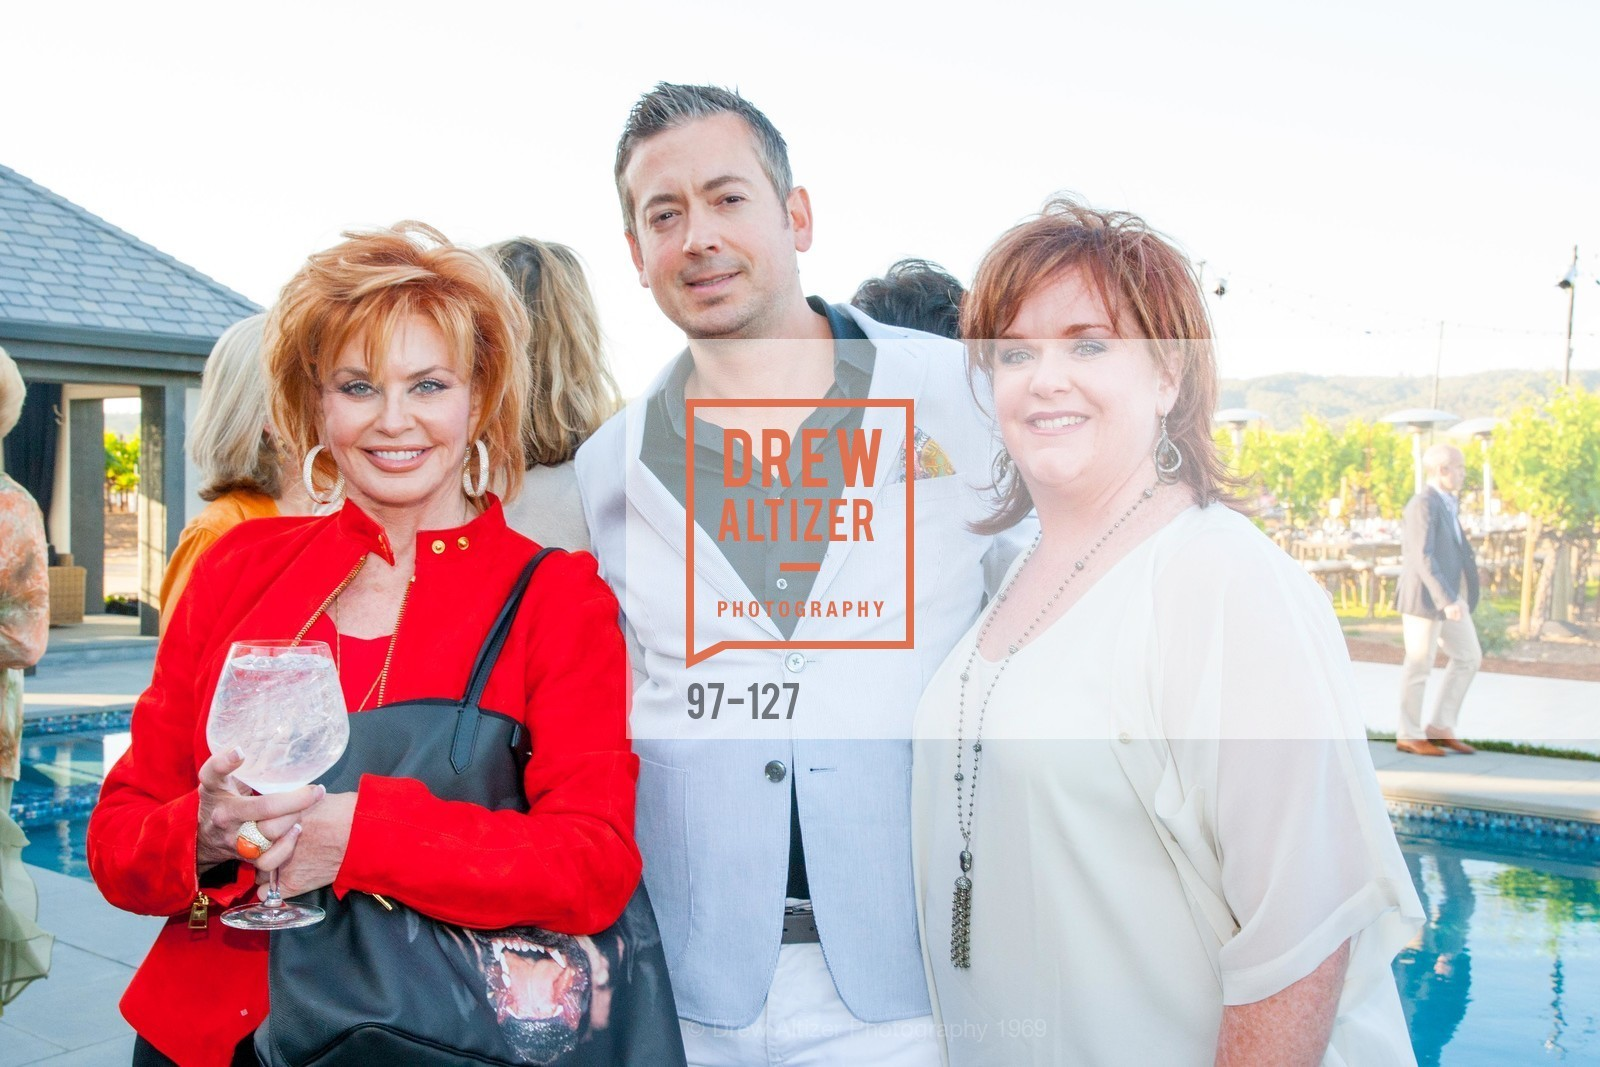 Vicky Walters, Chris Stubstad, Wendy Walters, An Evening in the Vineyard hosted by JACK CALHOUN & TRENT NORRIS, Jack Calhoun & Trent Norris Vineyard. 3393 Dry Creek Road, Healdsburg CA 95448, May 22nd, 2015,Drew Altizer, Drew Altizer Photography, full-service event agency, private events, San Francisco photographer, photographer California